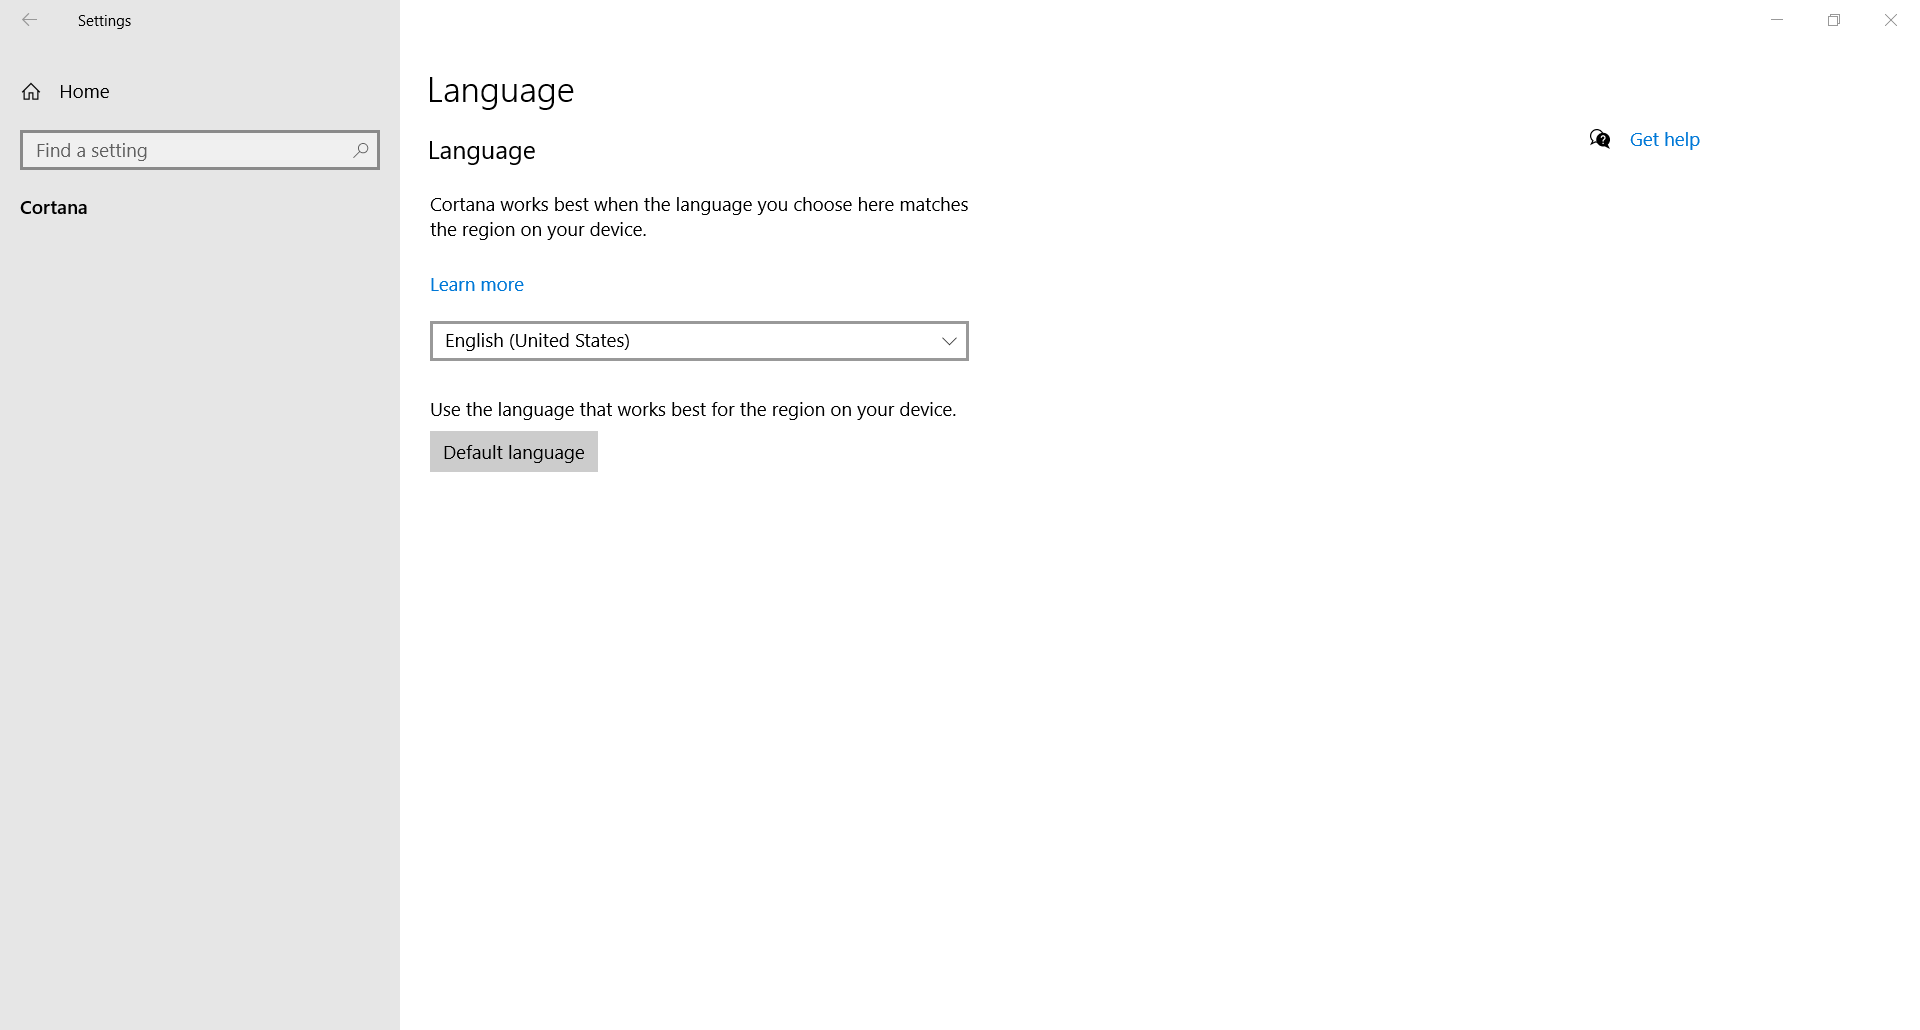 Can't search the web using windows search box in the task bar 96d34079-2c0d-4be3-9797-3b8e6bec0b0a?upload=true.png